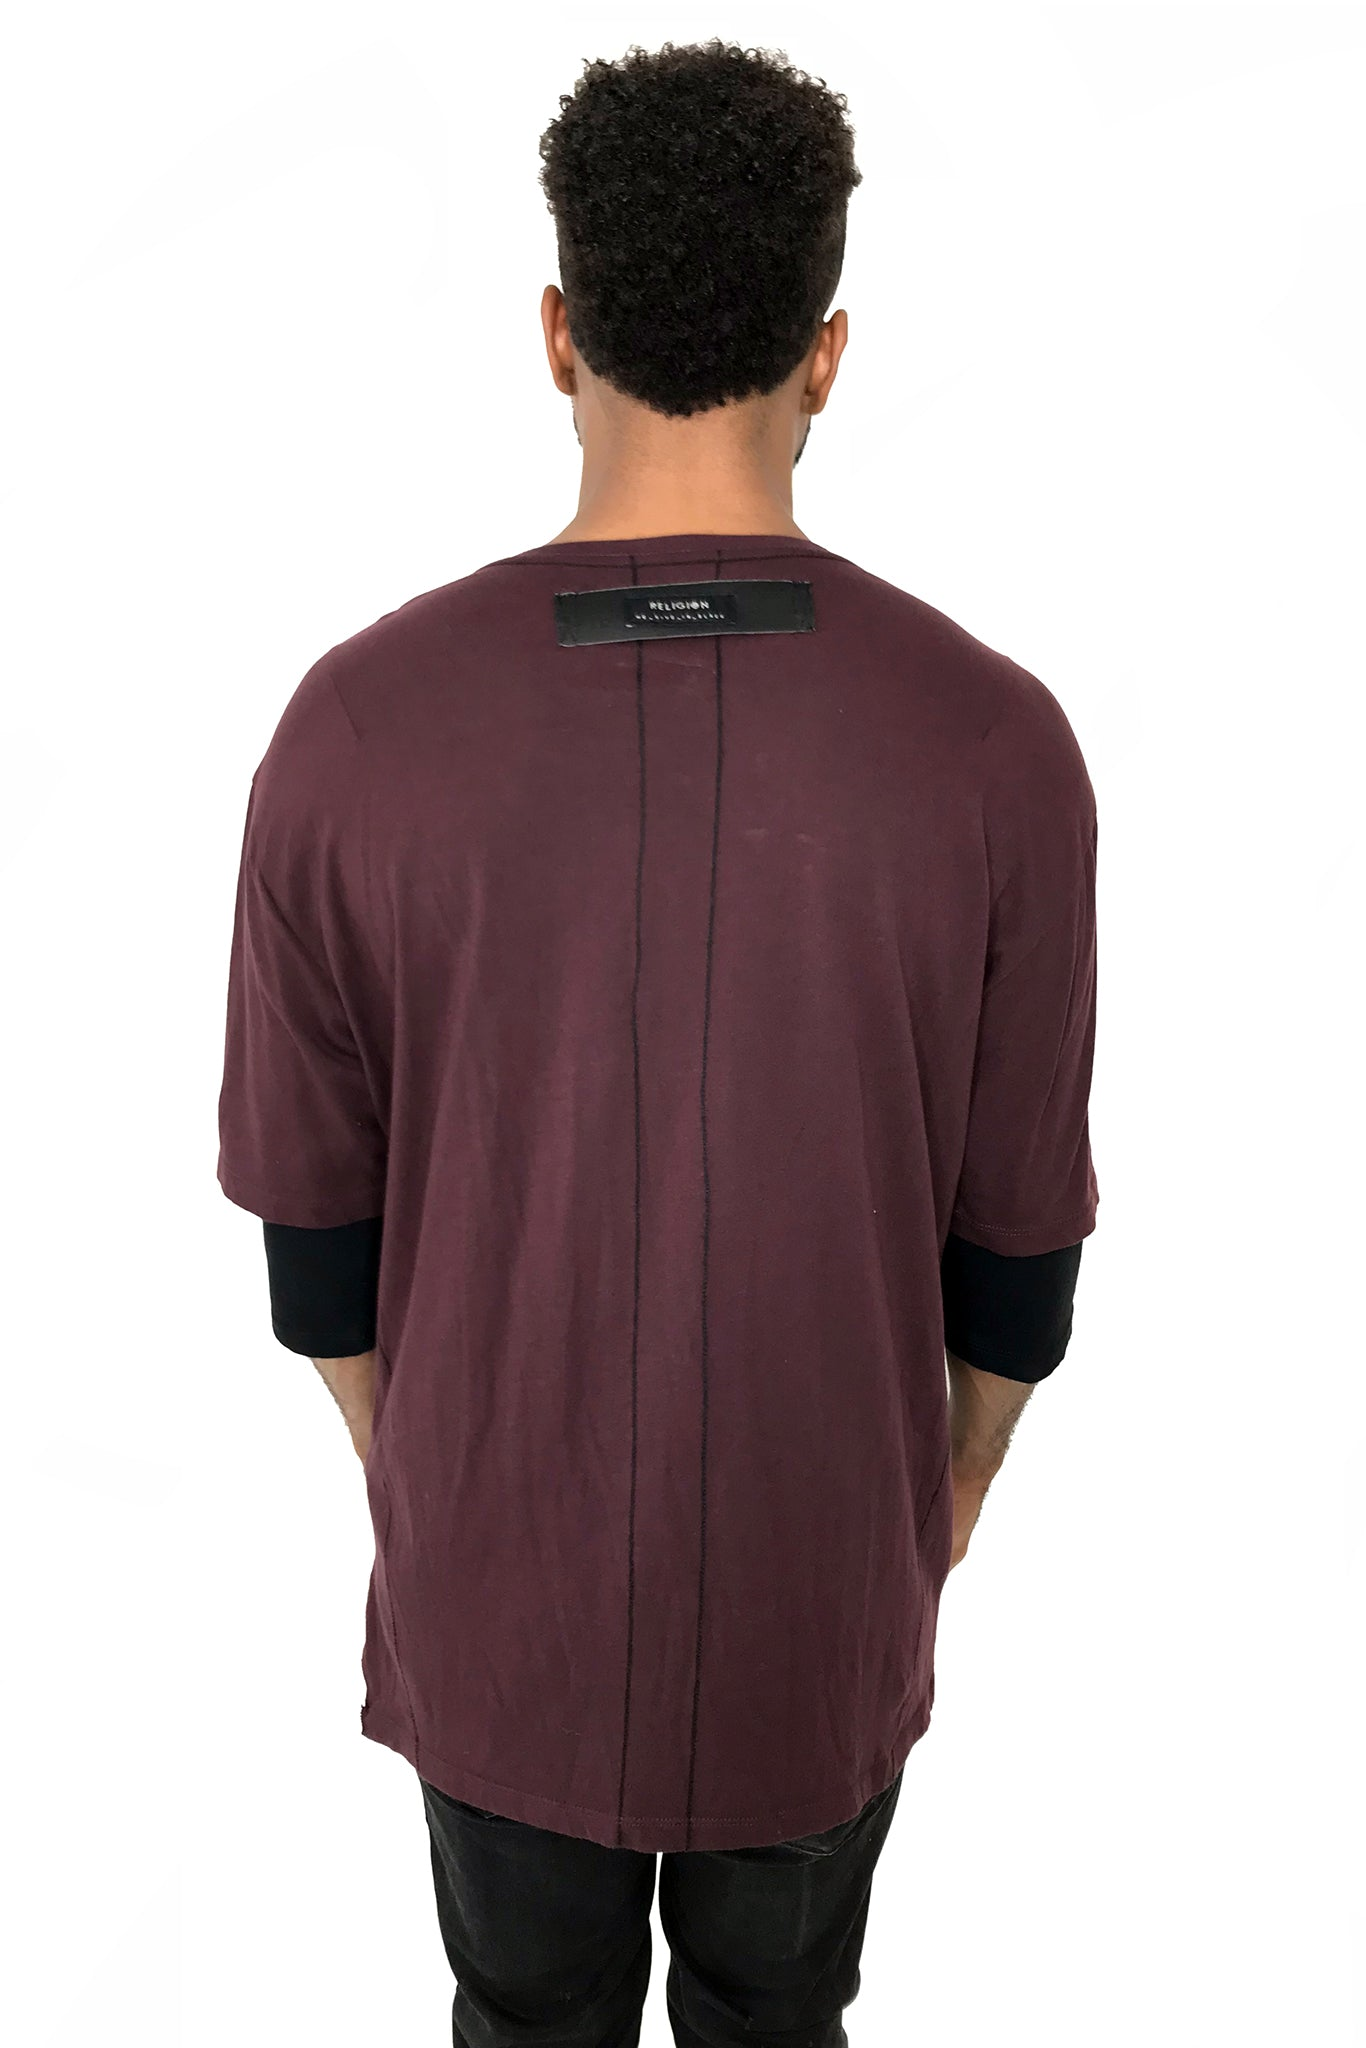 Men T-Shirt Block Merlot by Religion UK - Brit Boss